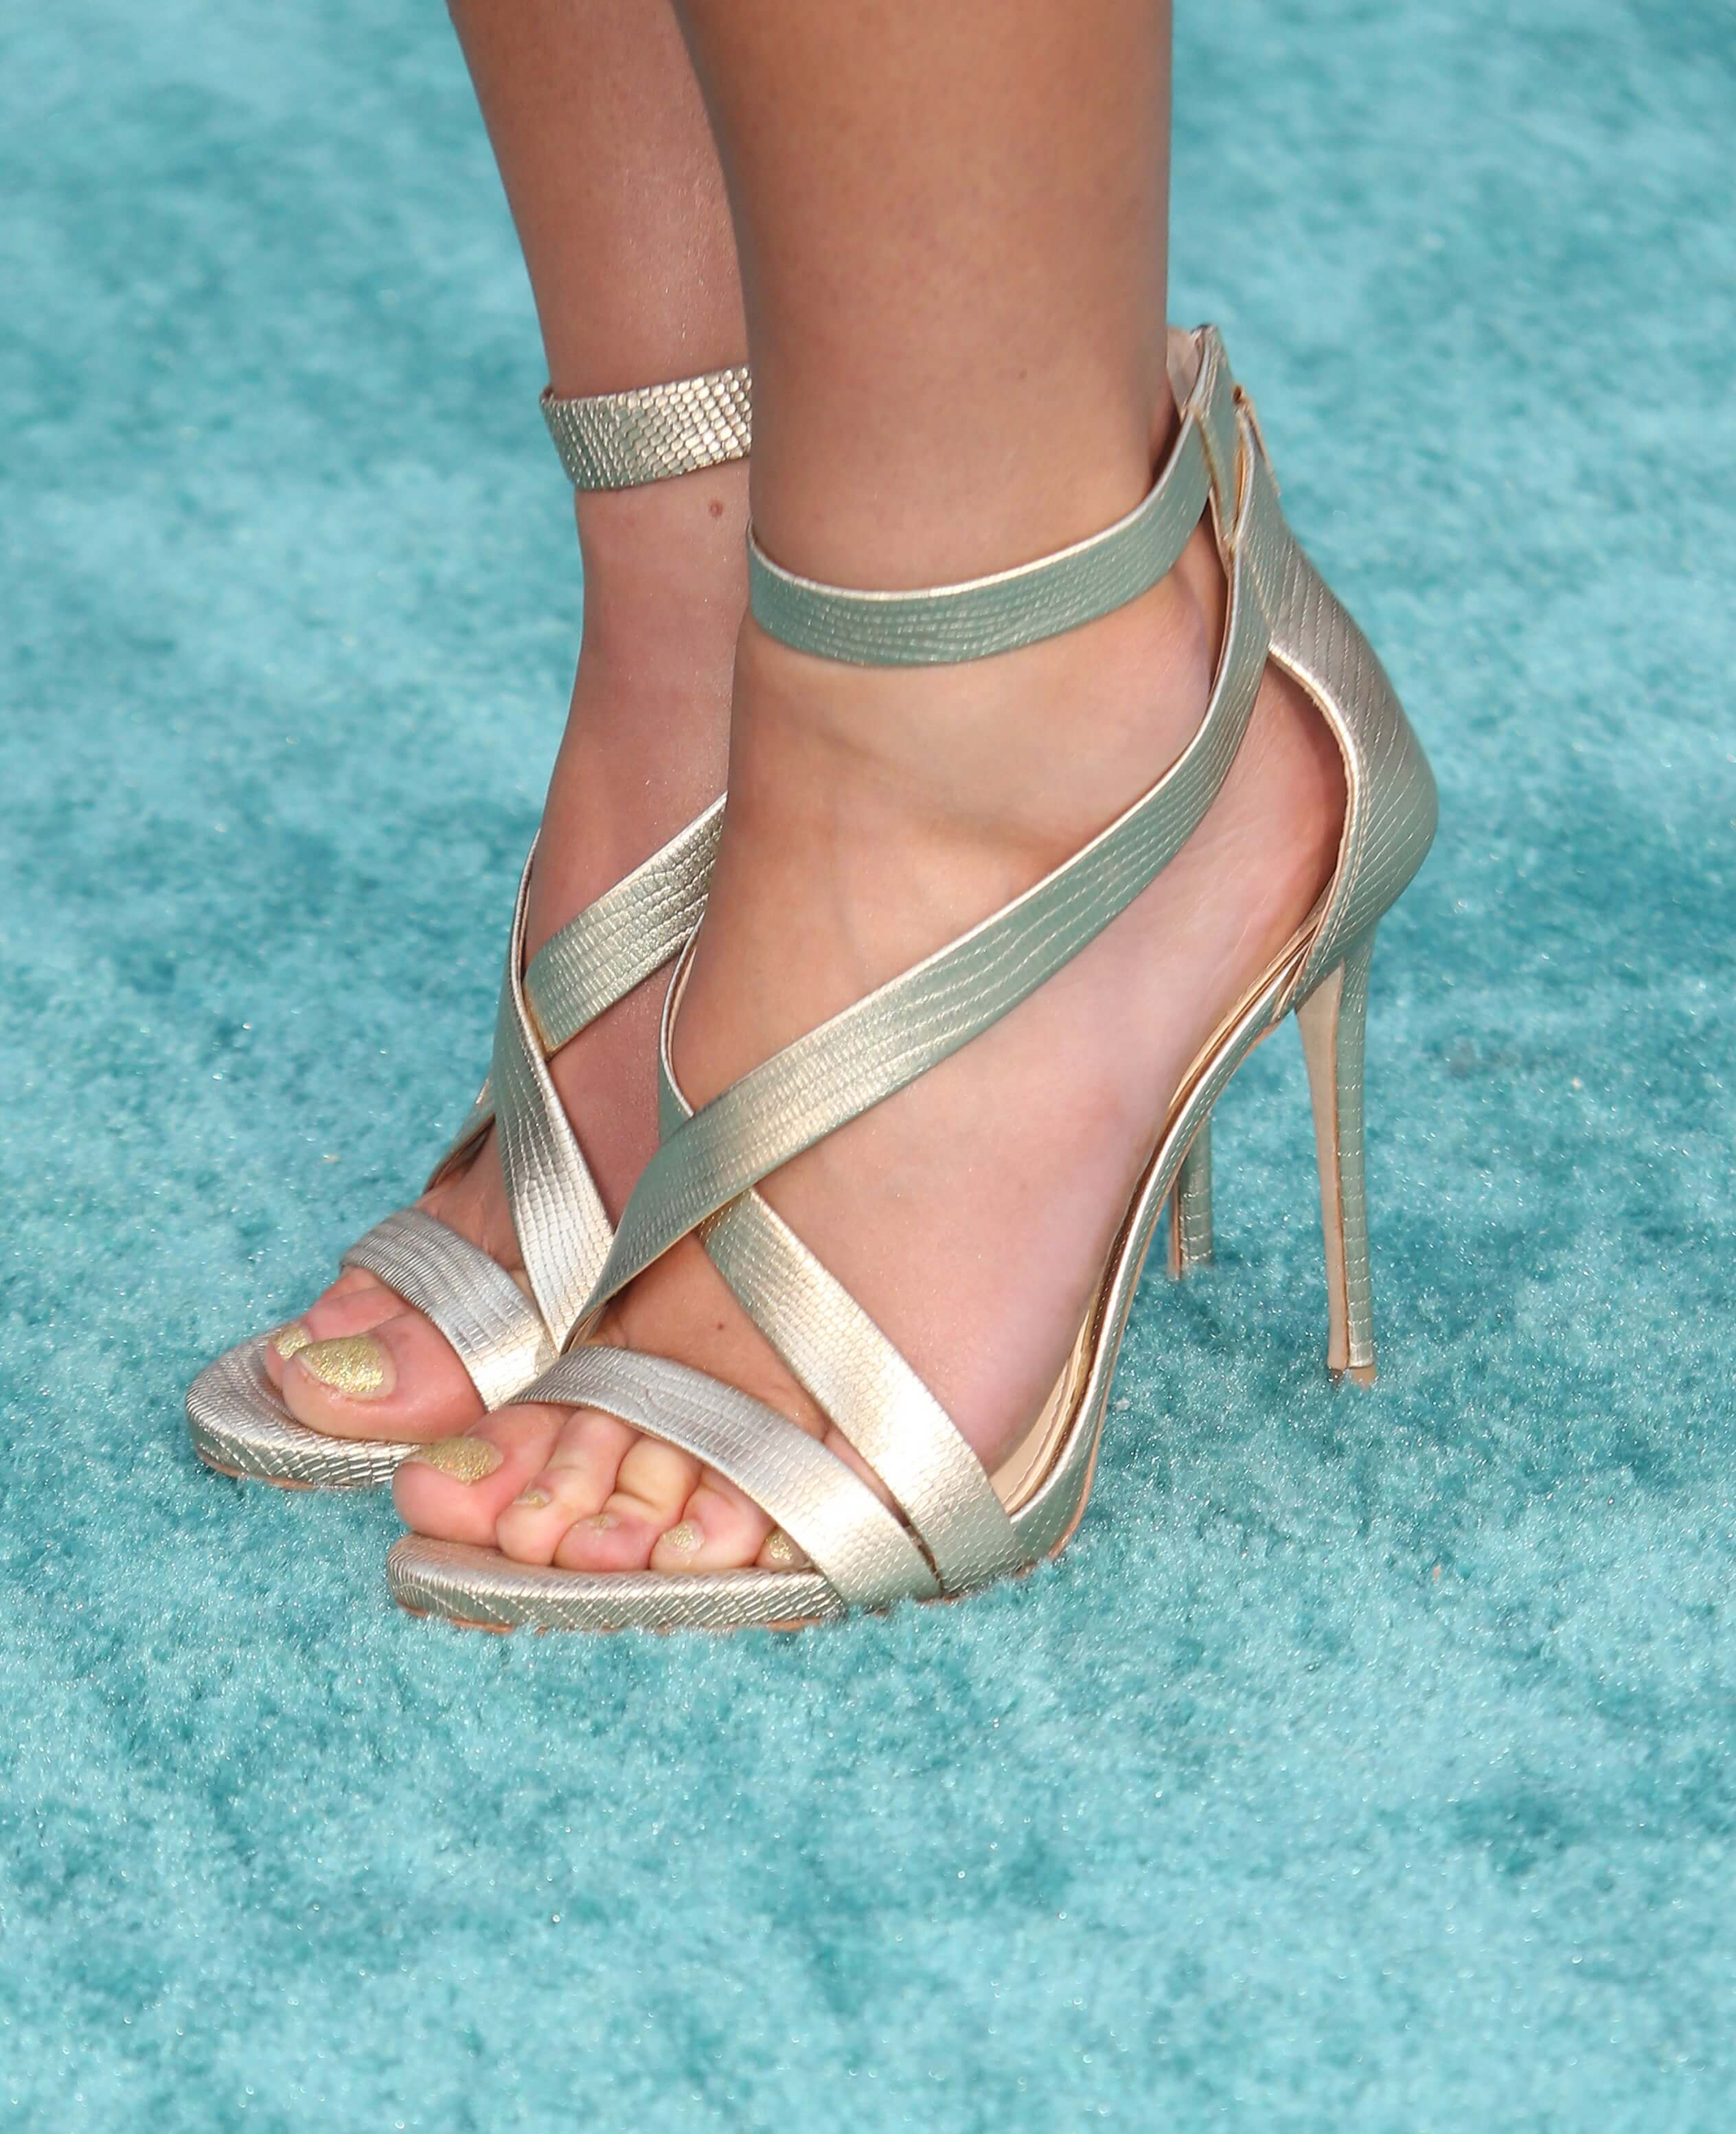 49 sexy photos of Lindsey Vonn Foot will blow your mind